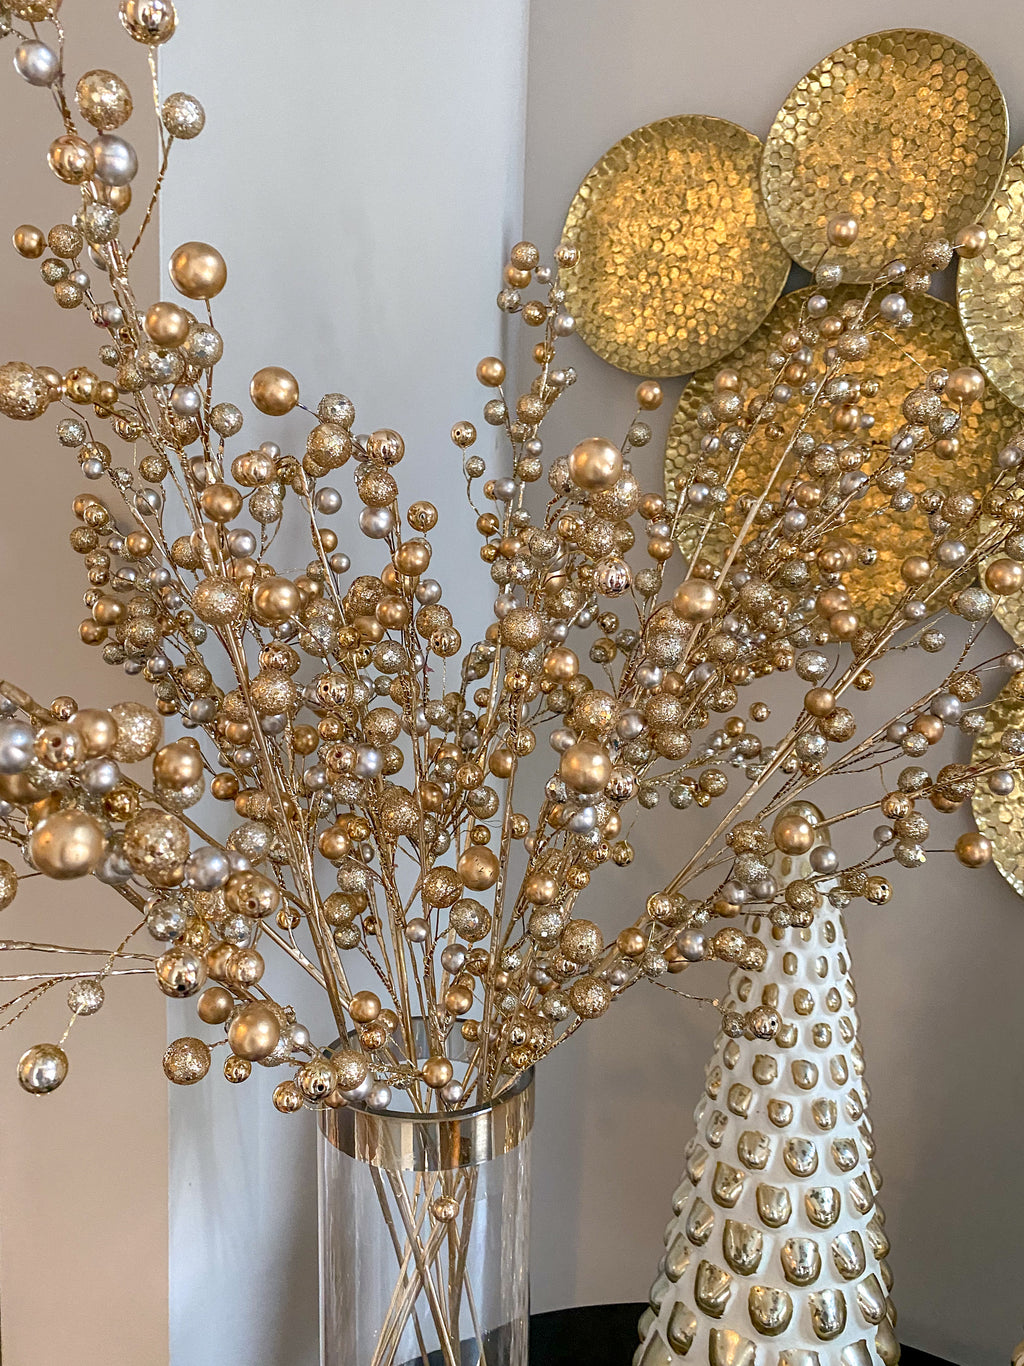 Gold and Silver Glitter Berry Stem-Inspire Me! Home Decor